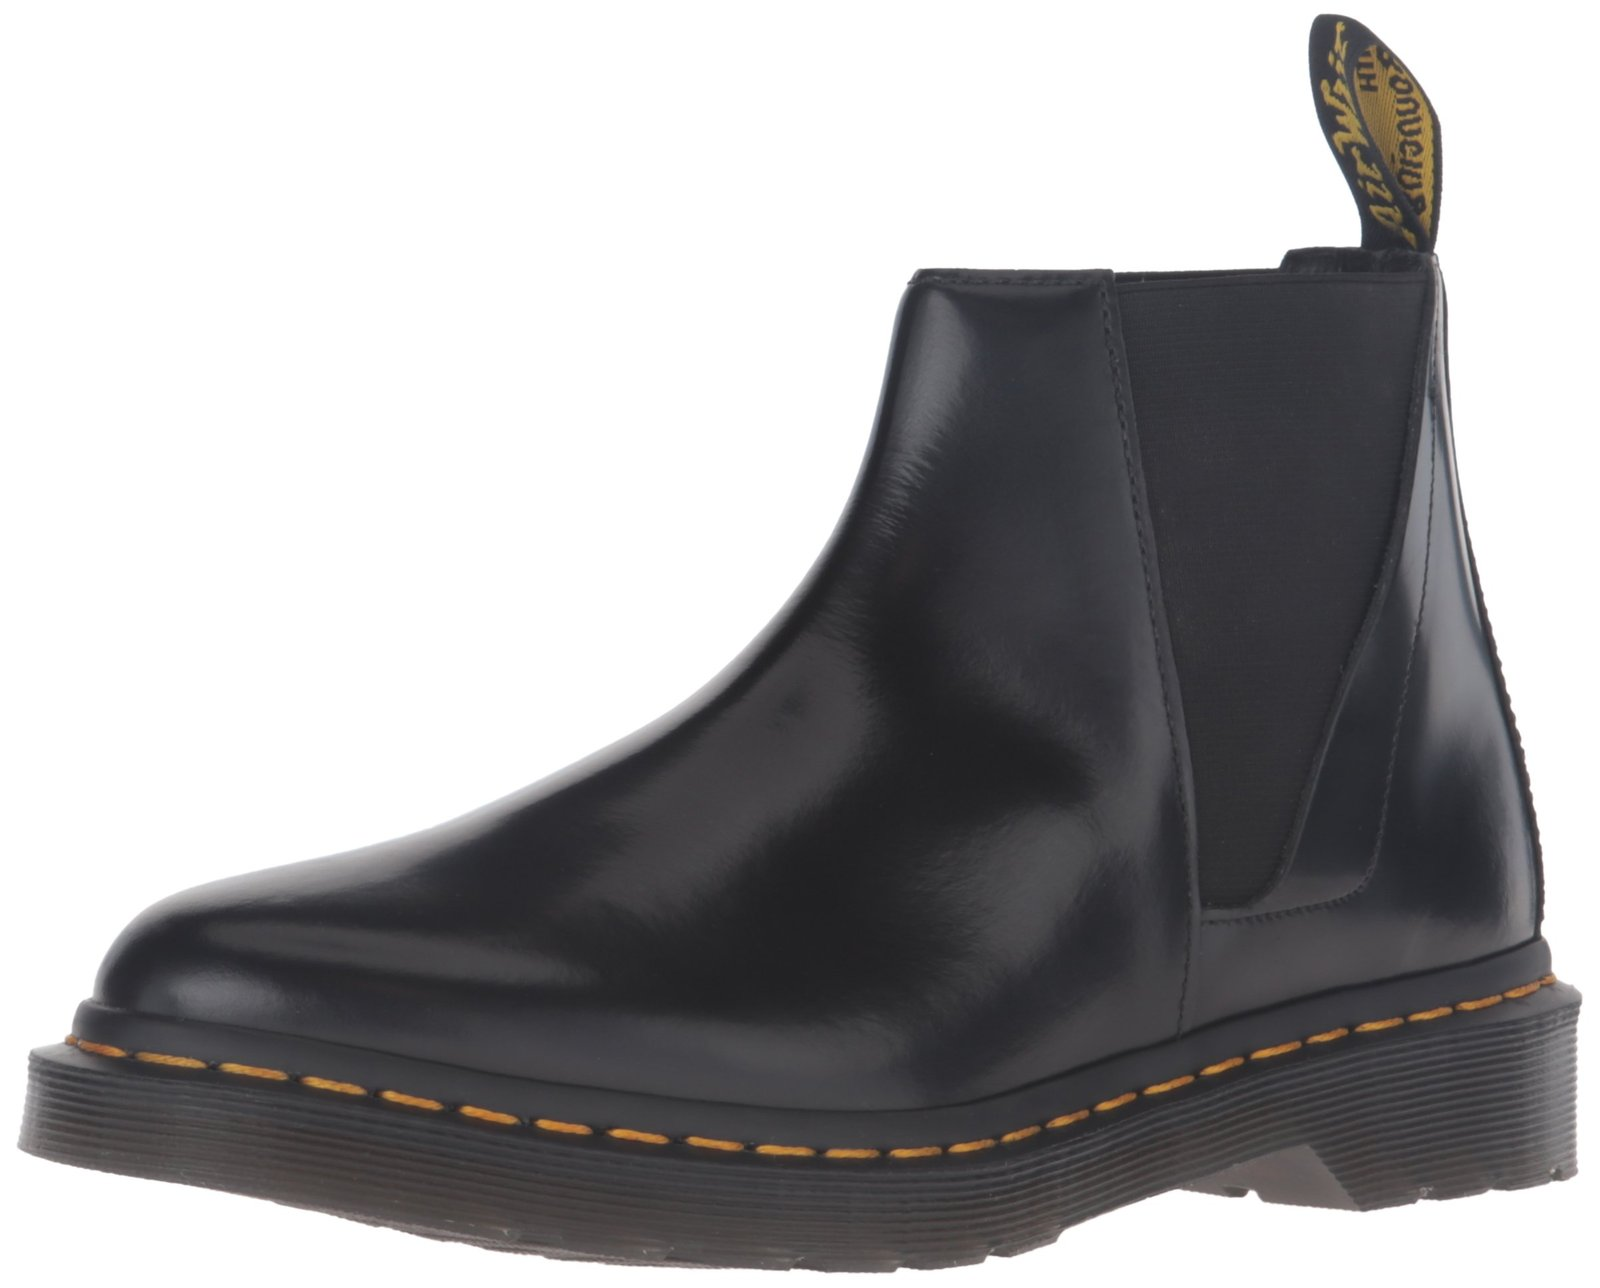 Dr. Martens Women's Bianca-R21603001 Ankle Bootie, Black, 5 UK/7 M US